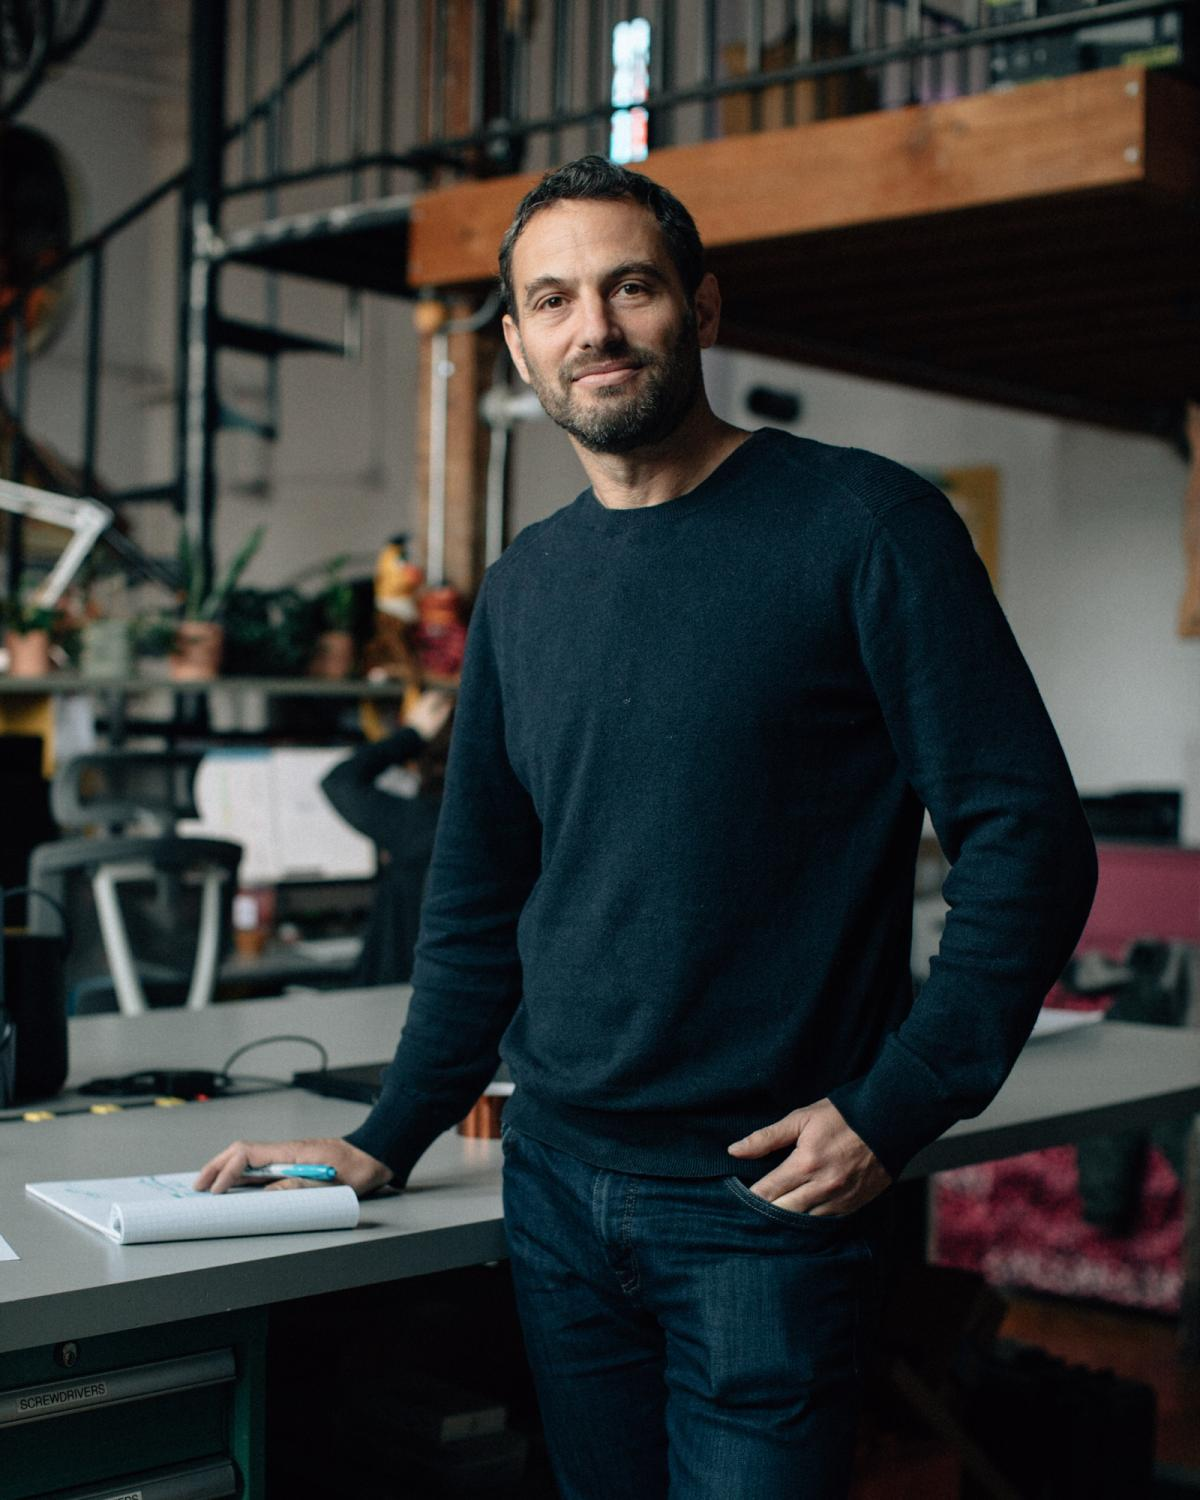 Joey Stein, co-founder and vice president of Moey Inc., for The Wall Street Journal